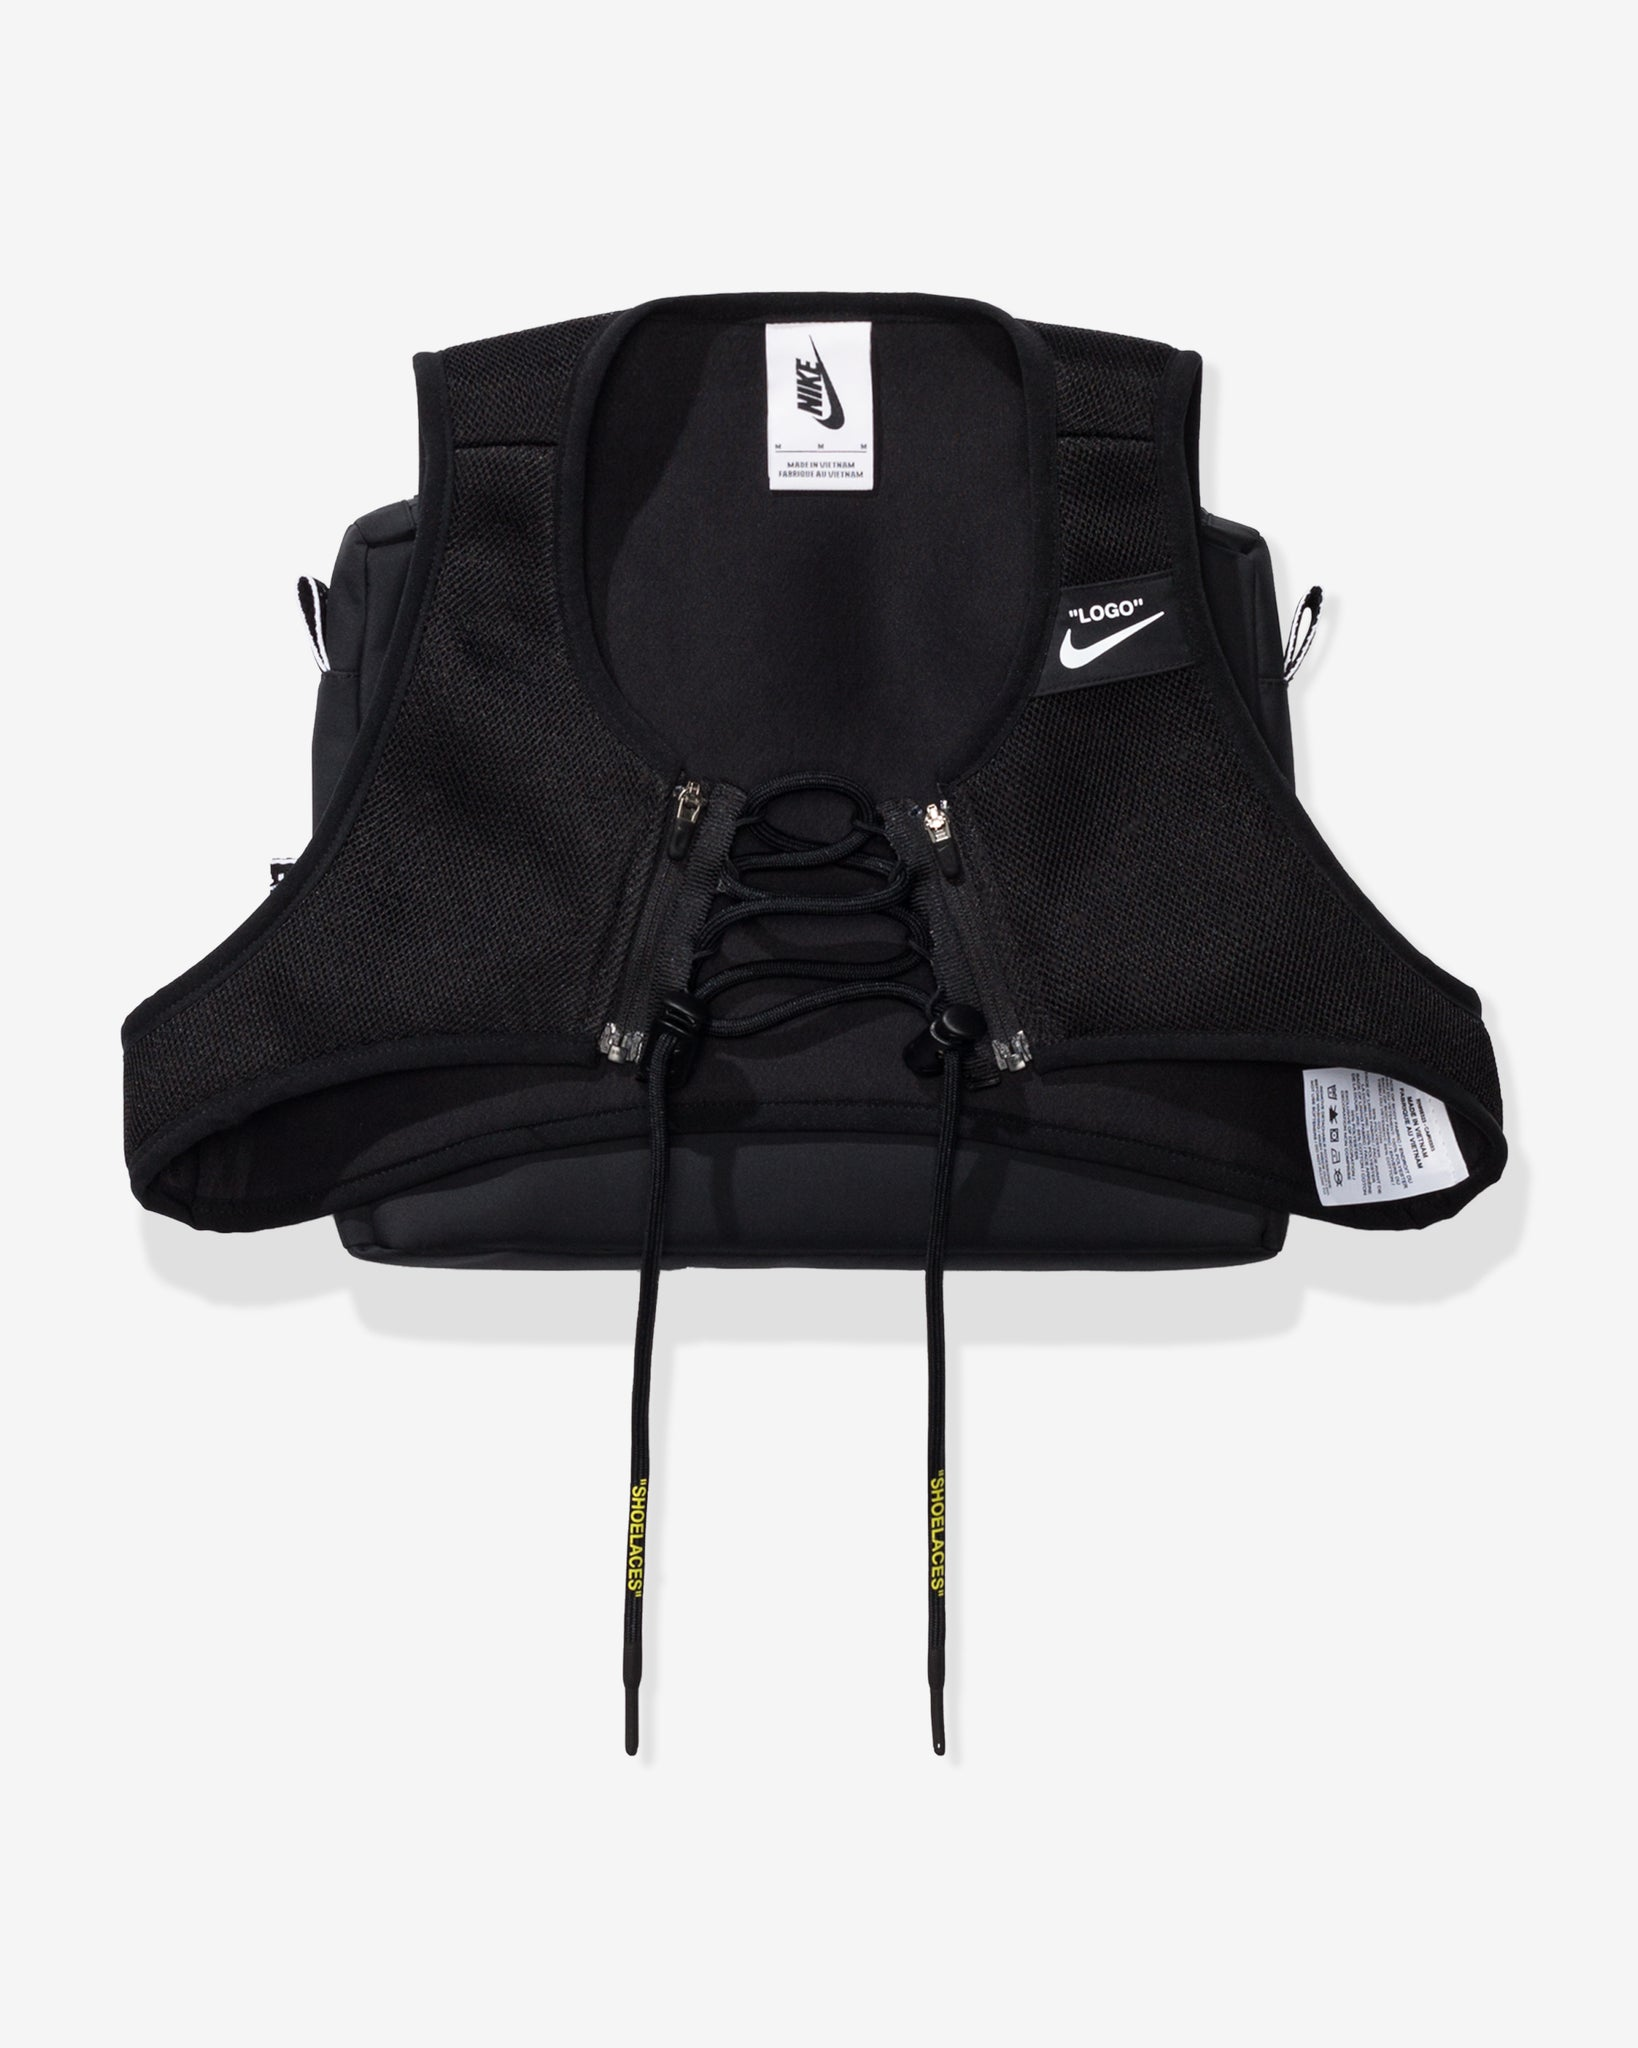 NIKE X OFF-WHITE WOMEN'S NRG XCROSS BIB #1 - BLACK